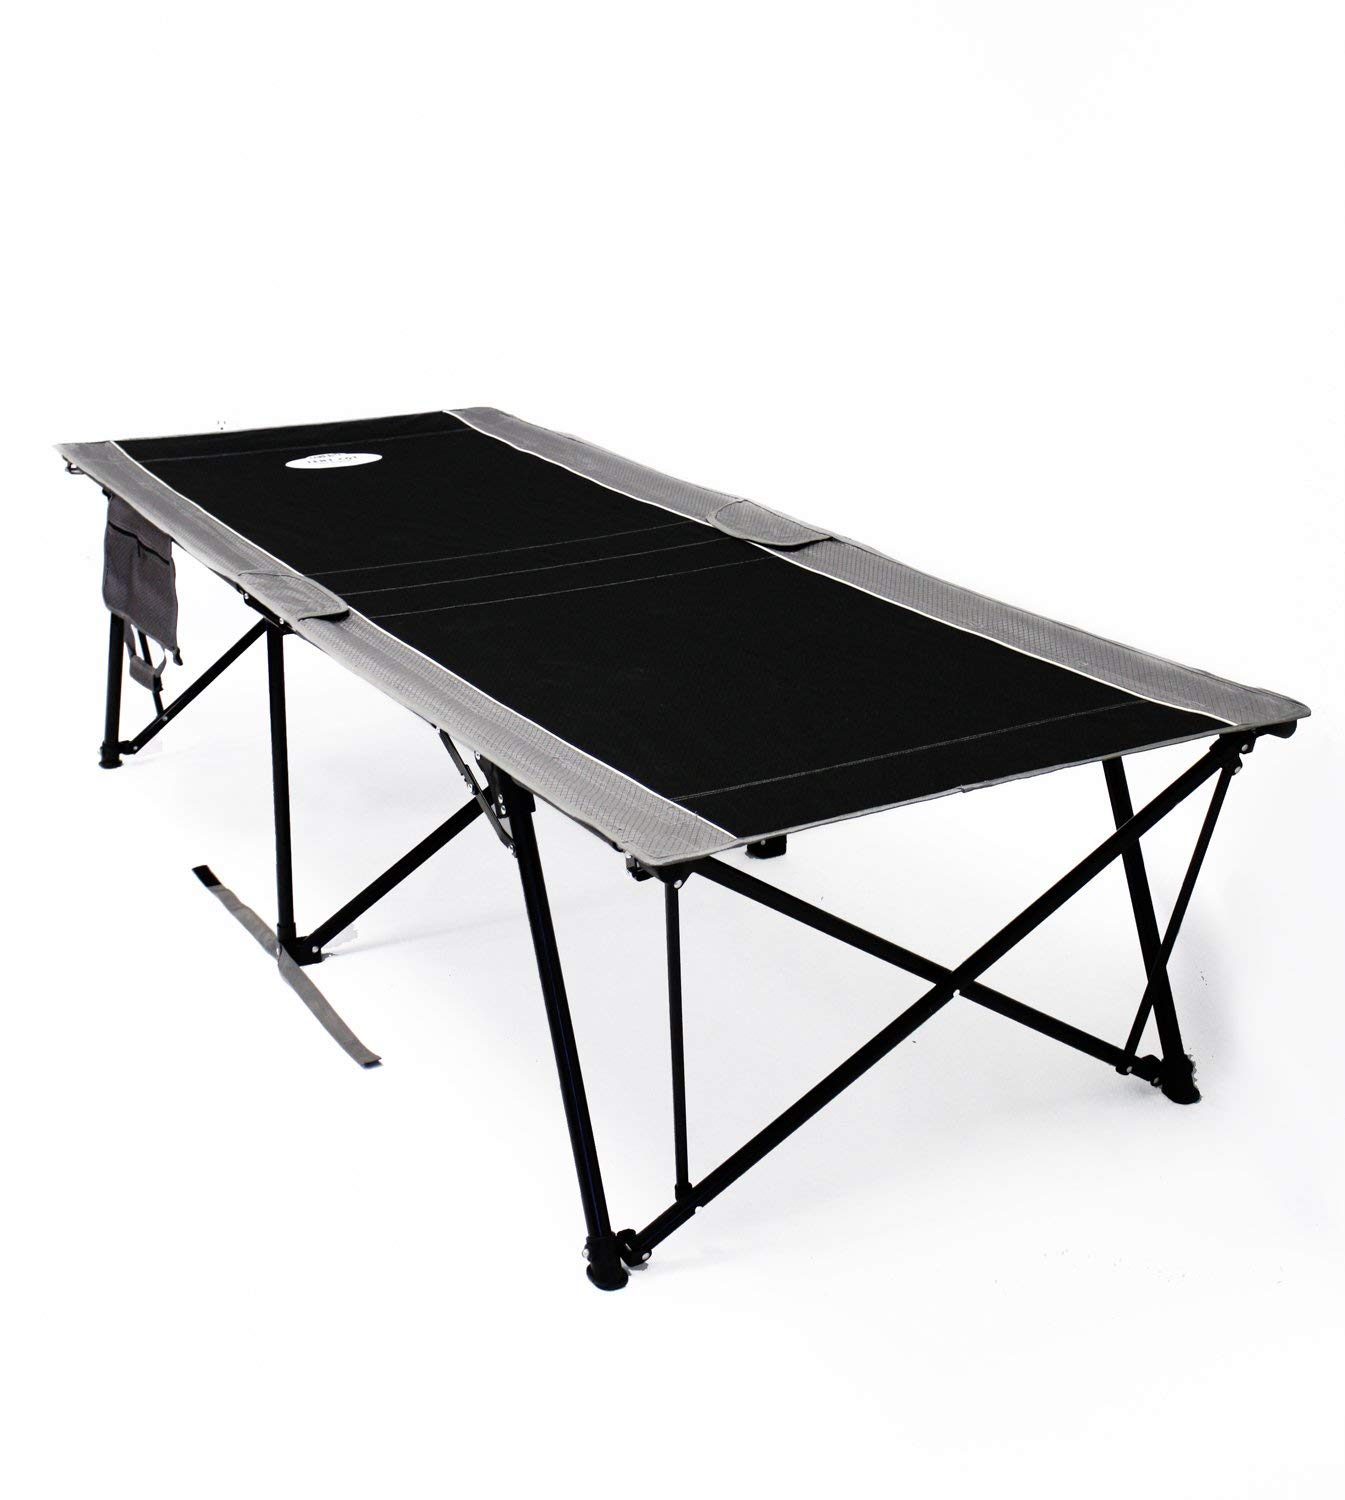 Kamp-Rite Kwik Sleeping Cots Reviews and Buying Guide by www.snoremagazine.com